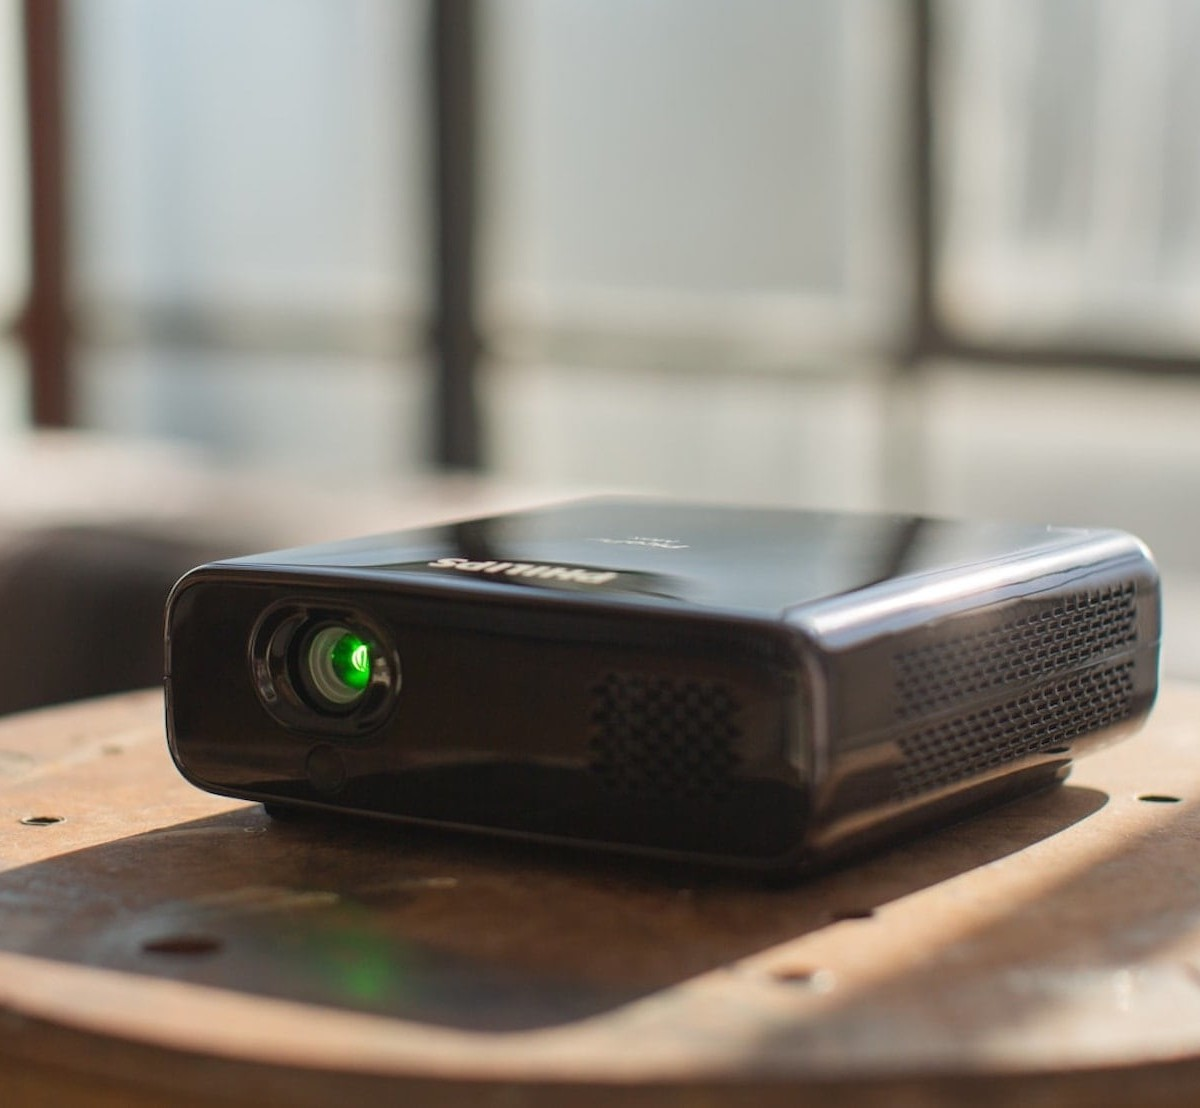 Philips PicoPix Max Full HD Projector provides you with a cinema experience anywhere